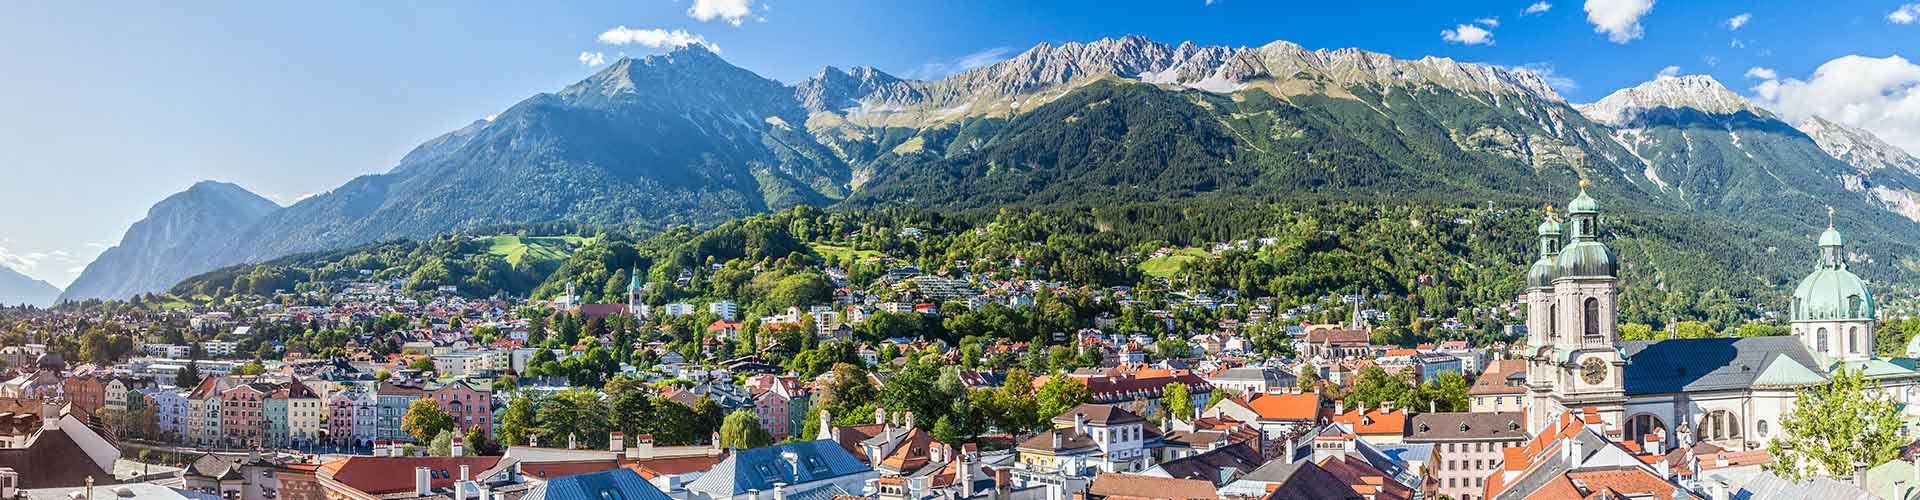 Innsbruck – Apartments in Innsbruck. Maps of Innsbruck, Photos and Reviews for each Apartment in Innsbruck.